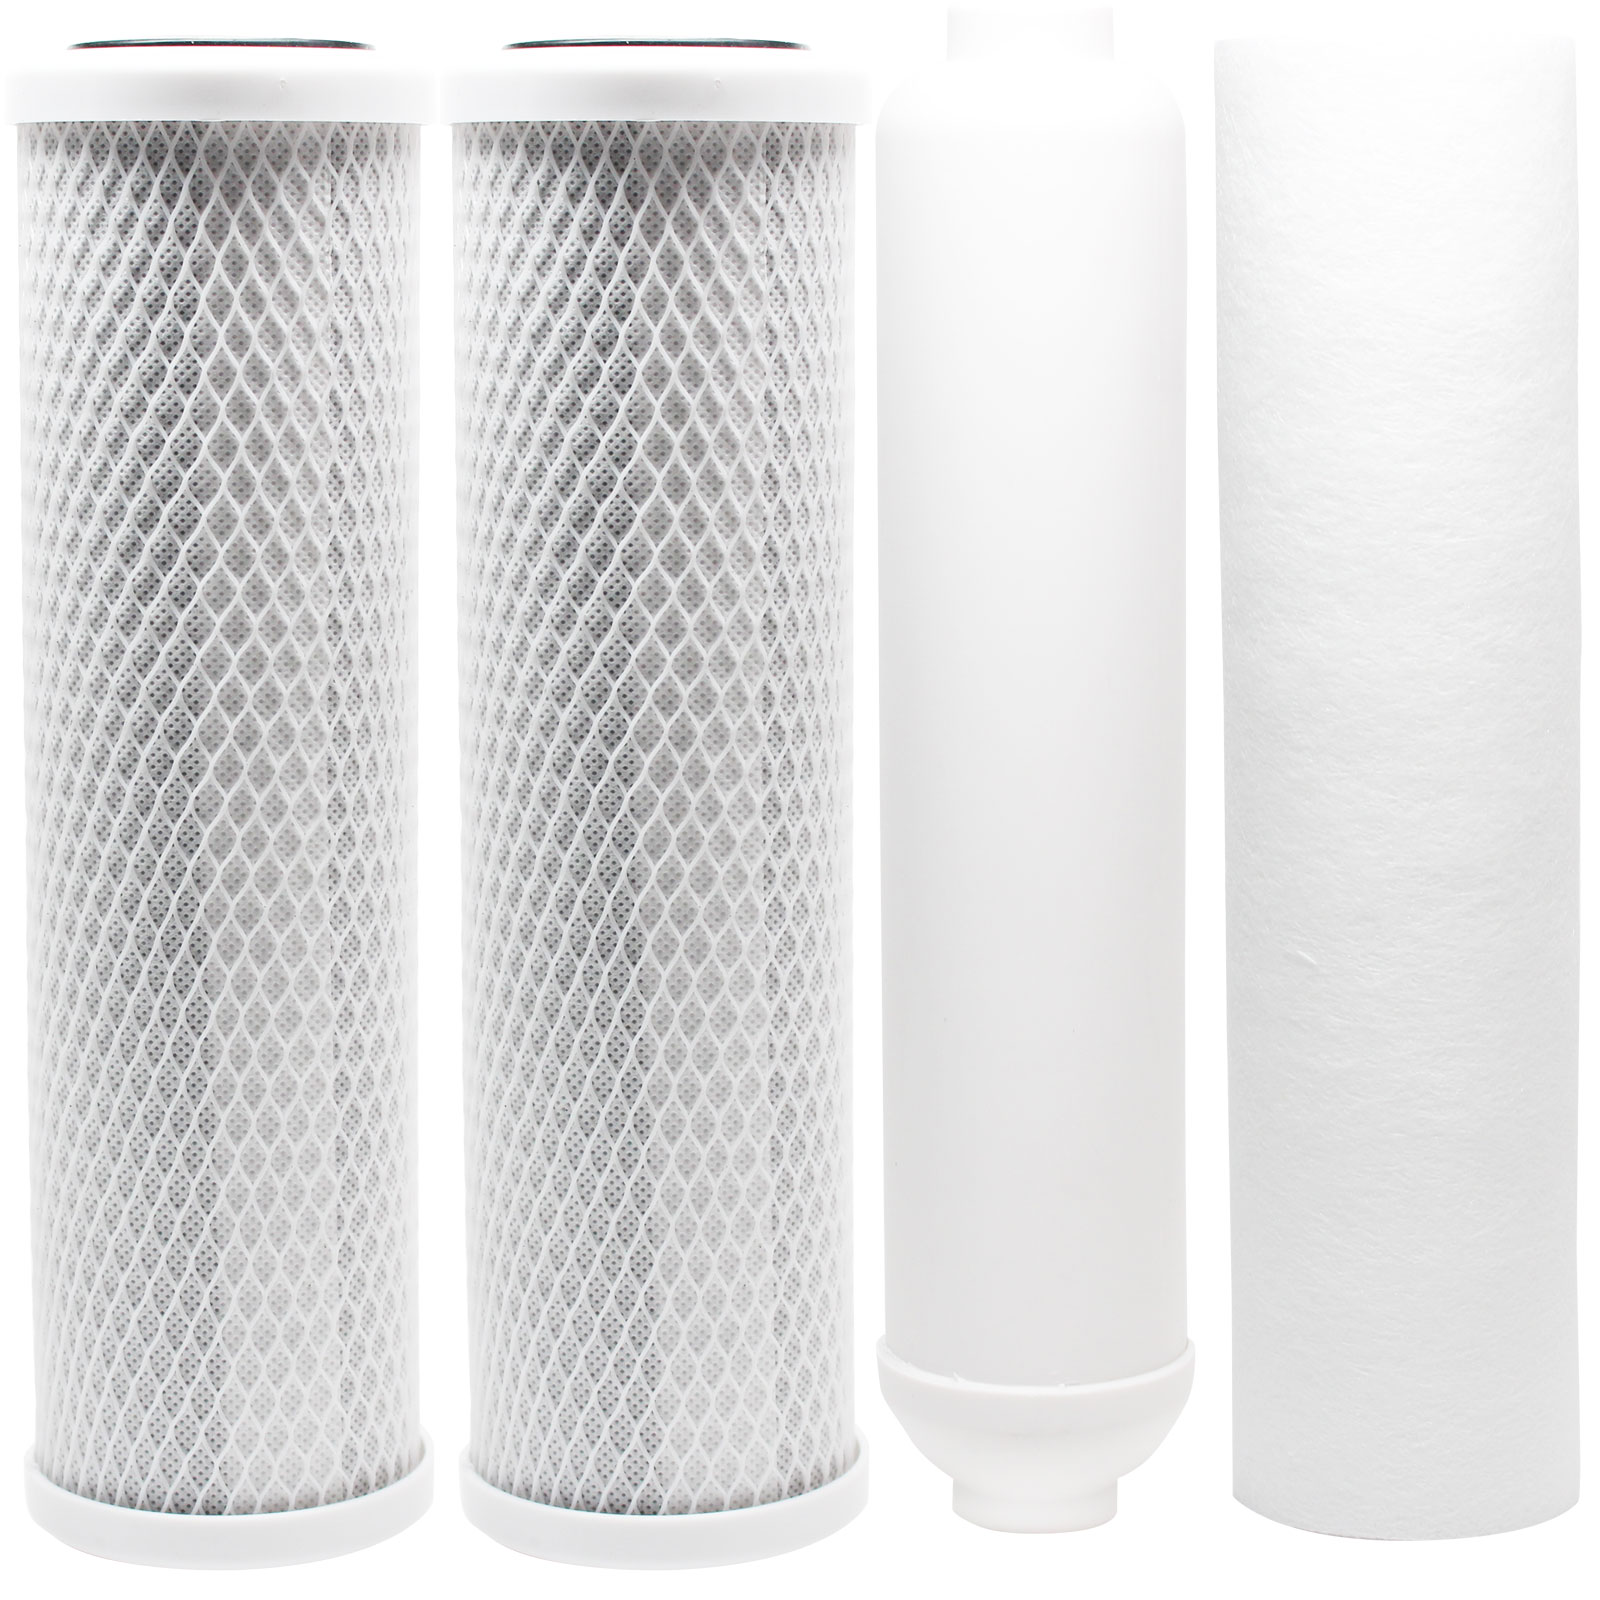 Replacement Filter Kit for Proline Proline Gold RO System - Includes Carbon Block Filters, PP Sediment Filter & Inline Filter Cartridge - Denali Pure Brand